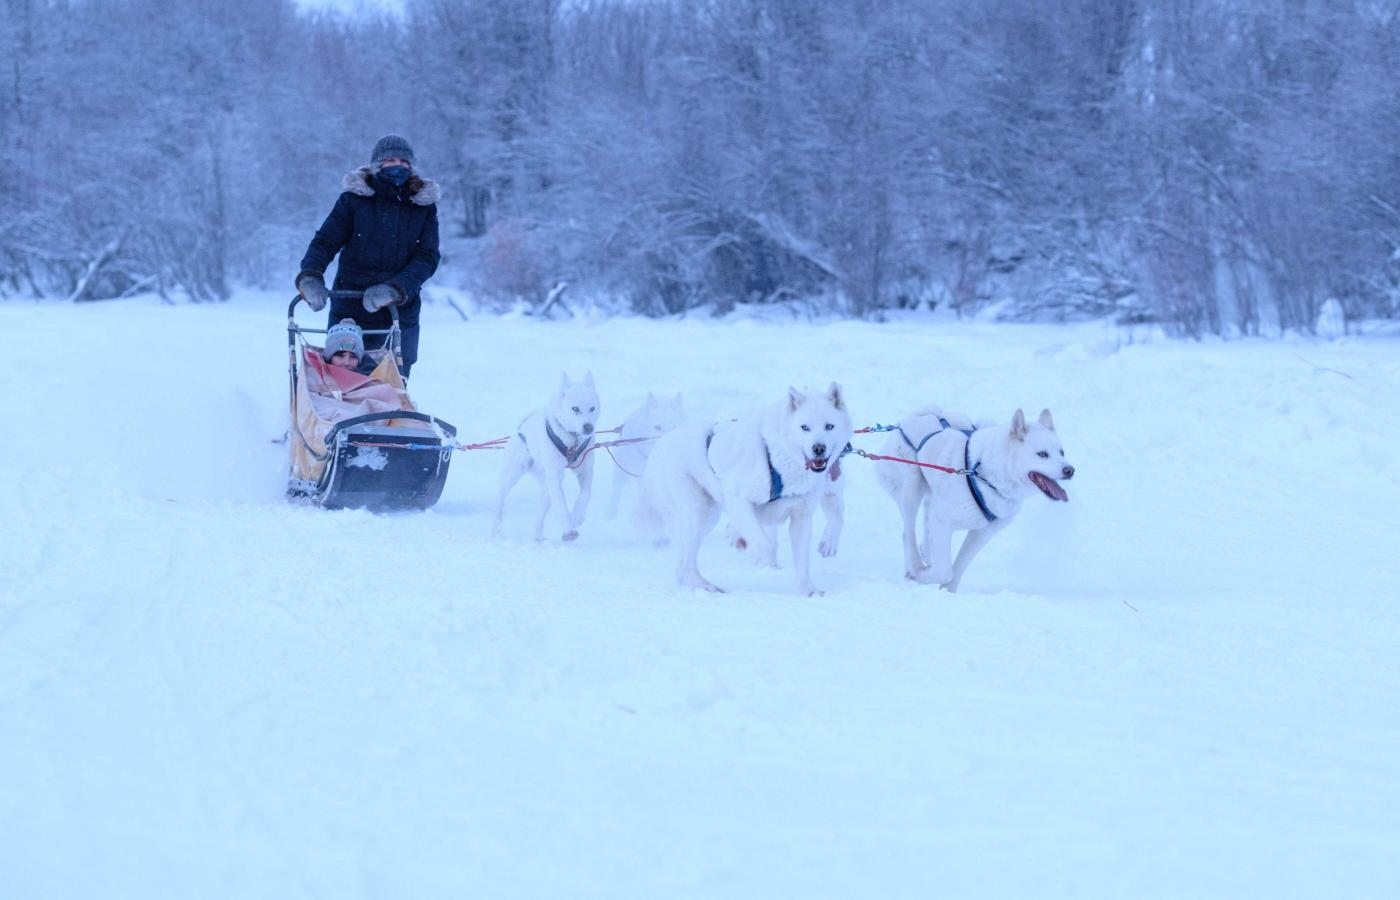 A person drives a child in a dog sled with a team of huskies in Inuvik, Northwest Territories